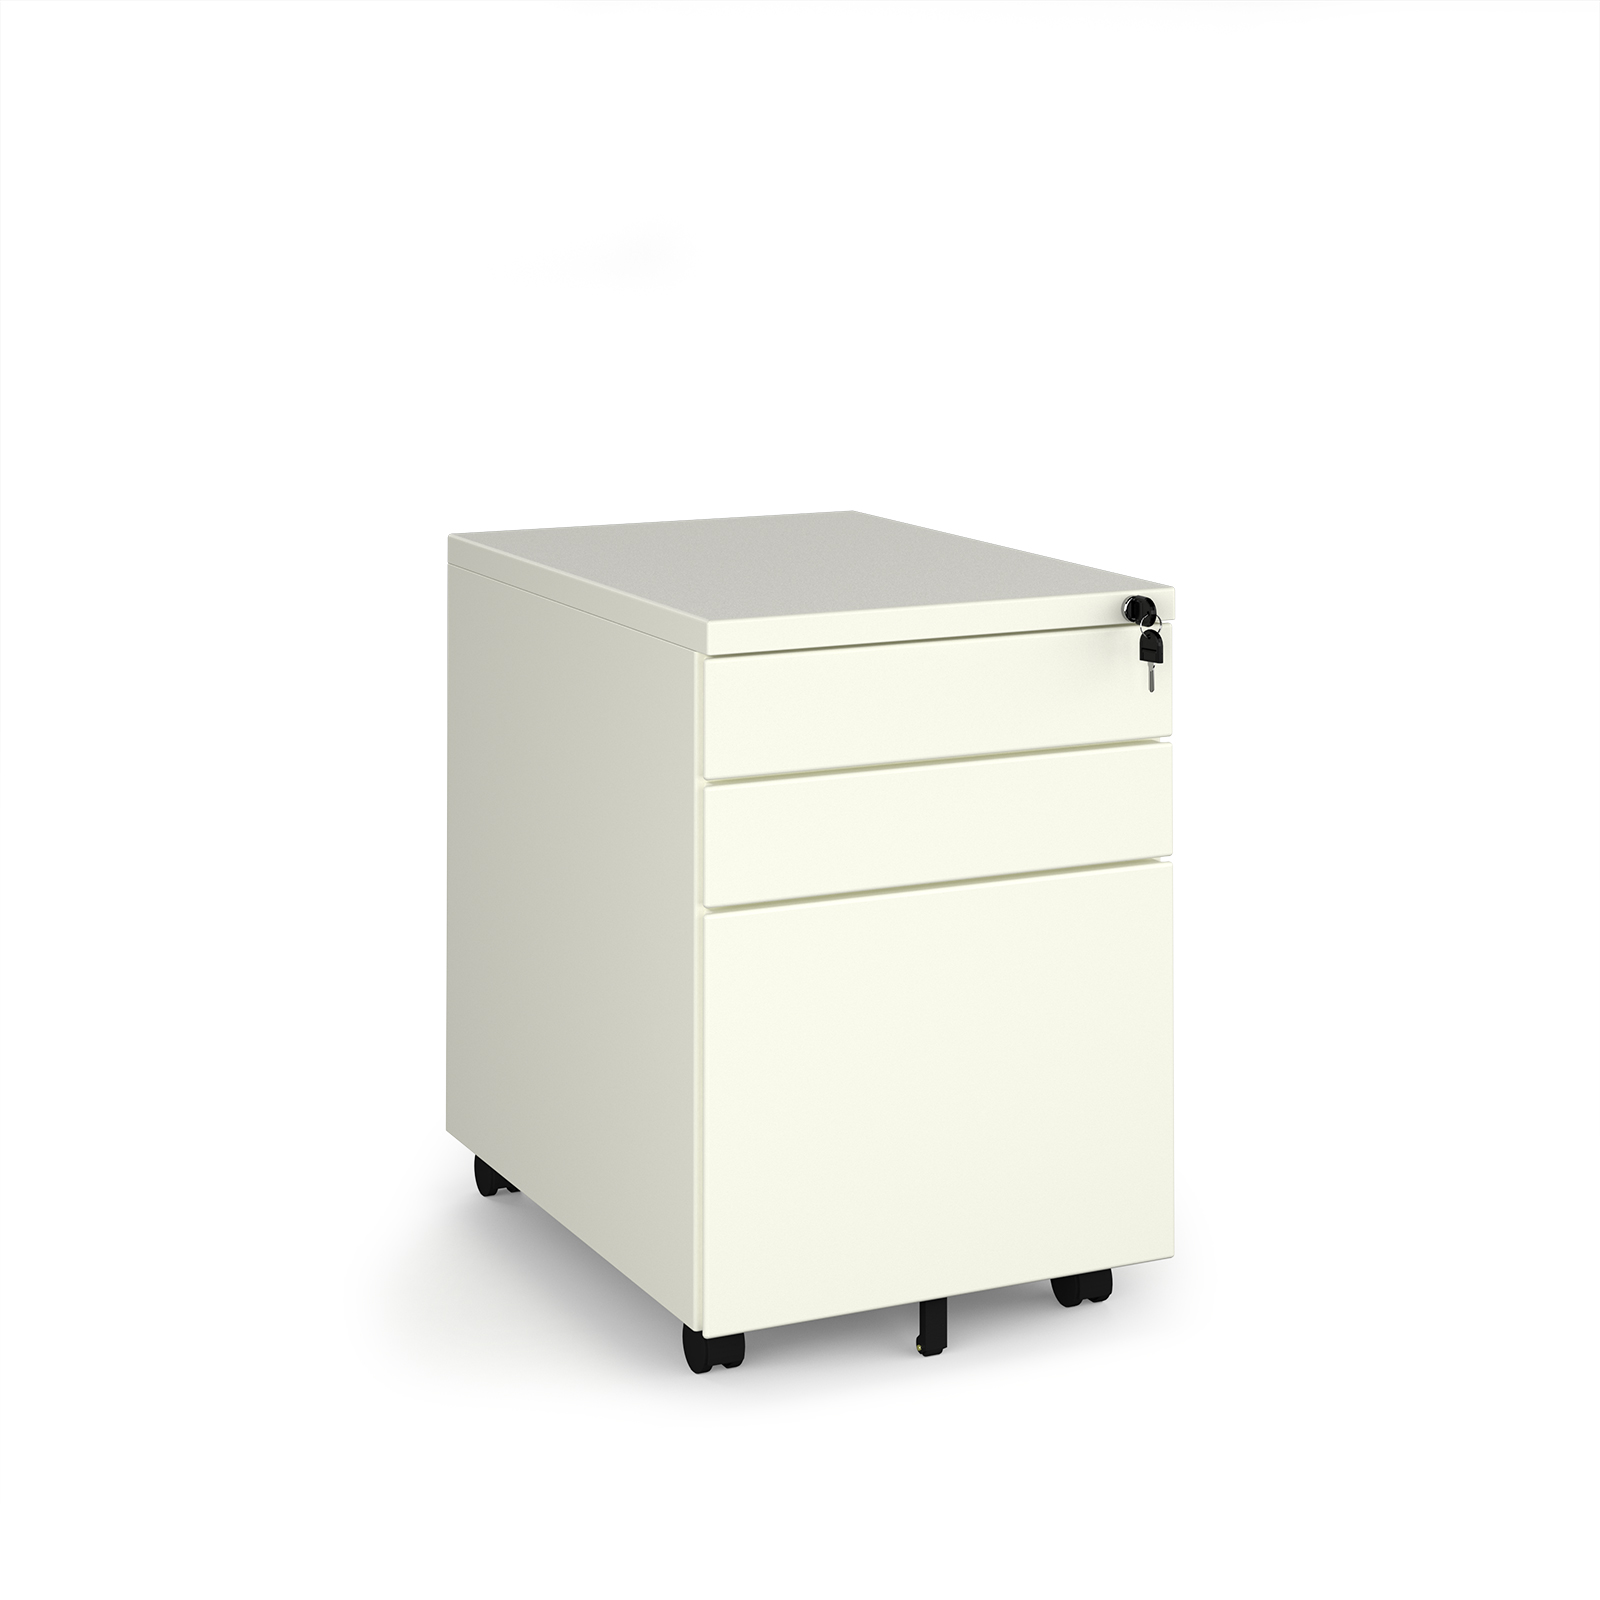 Steel 3 drawer wide mobile pedestal - white